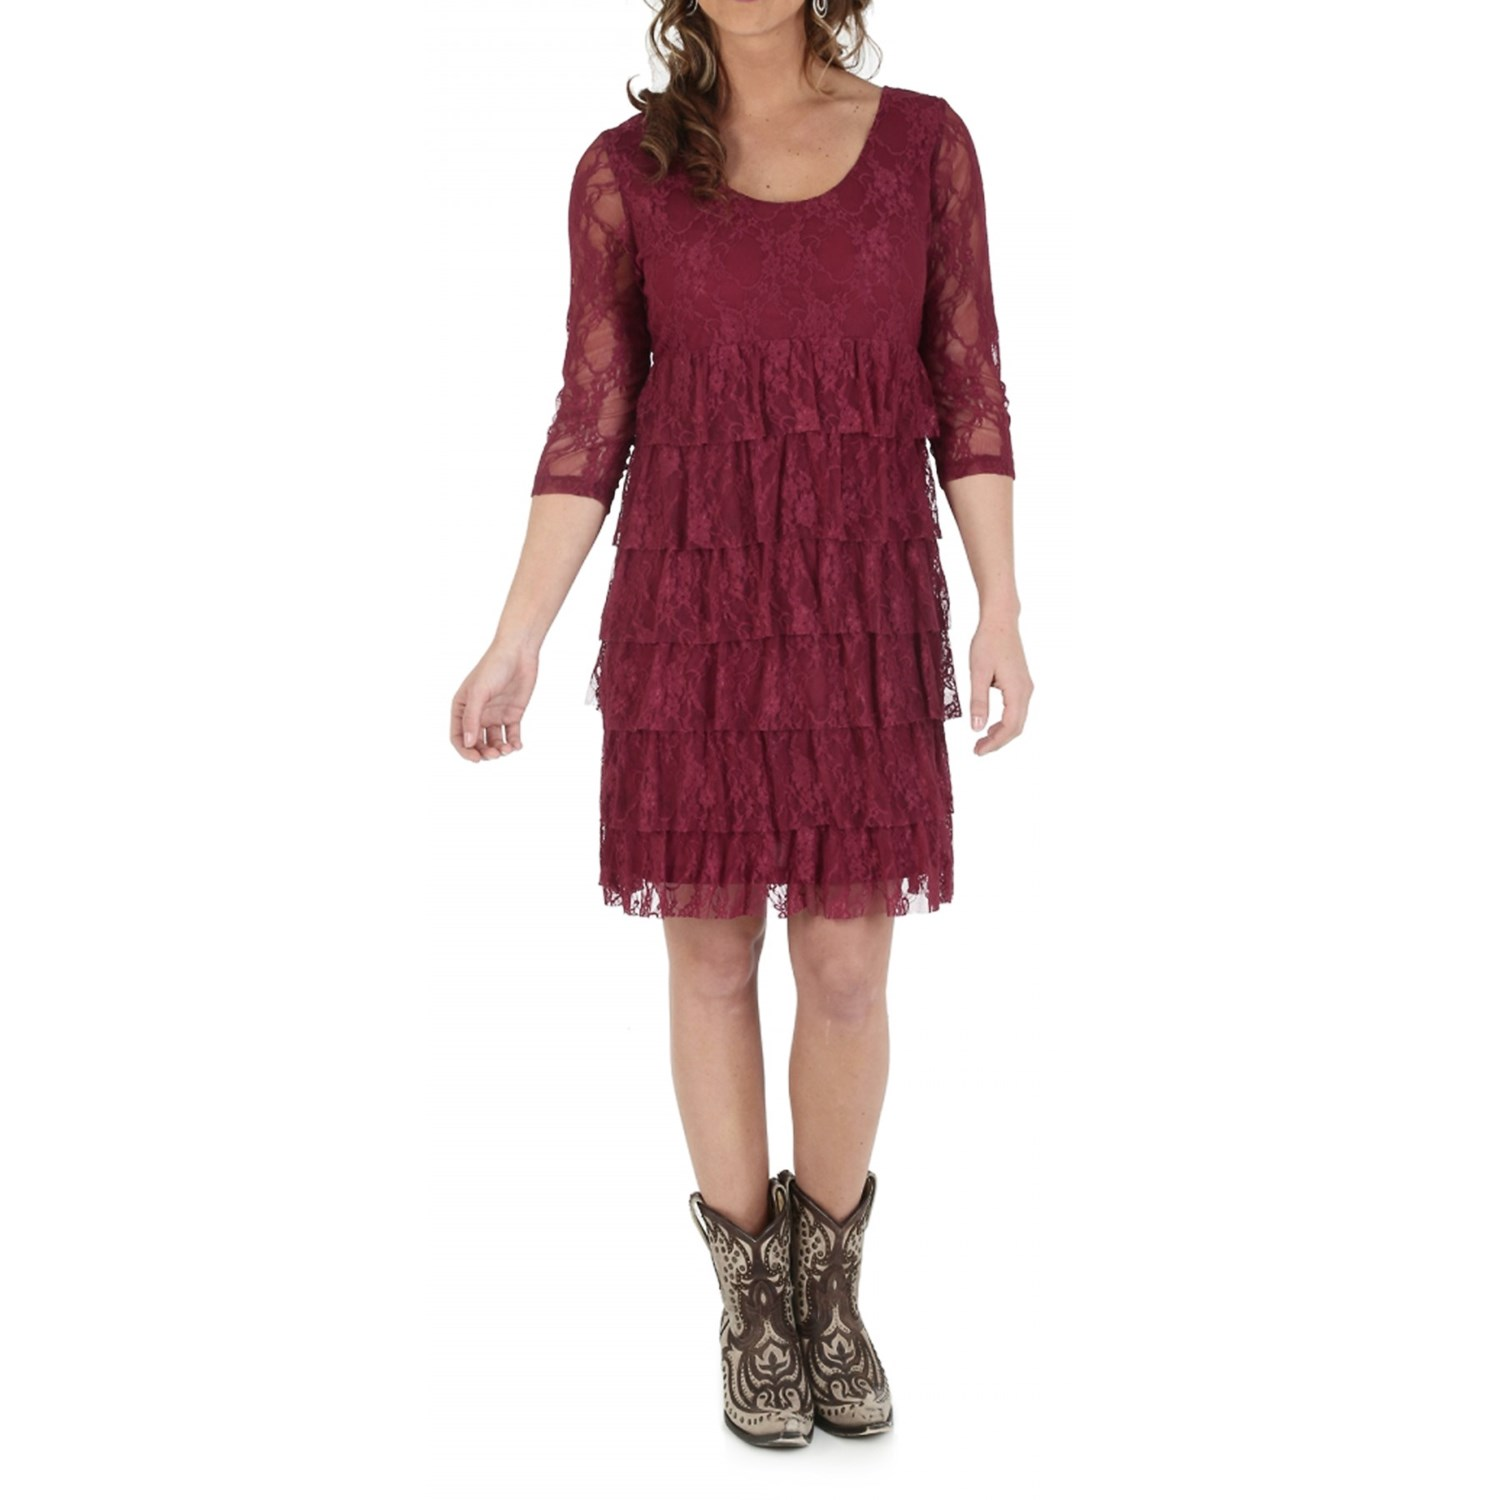 04bbb155f8f7a Wrangler Tiered Lace Dress (For Women) 71 on PopScreen